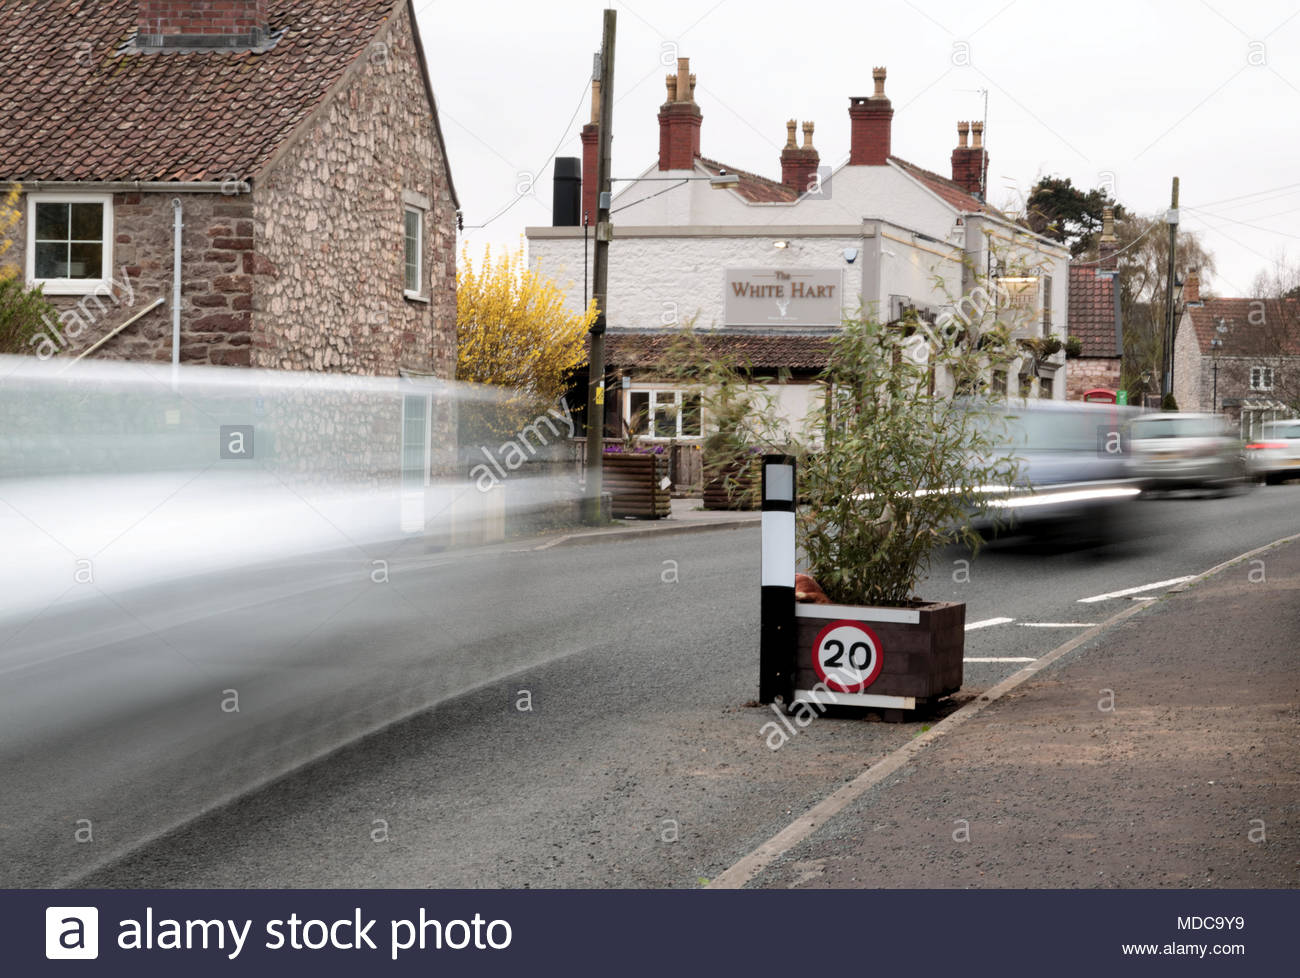 Traffic Calming measures introduced in Weston in Gordano - Stock Image